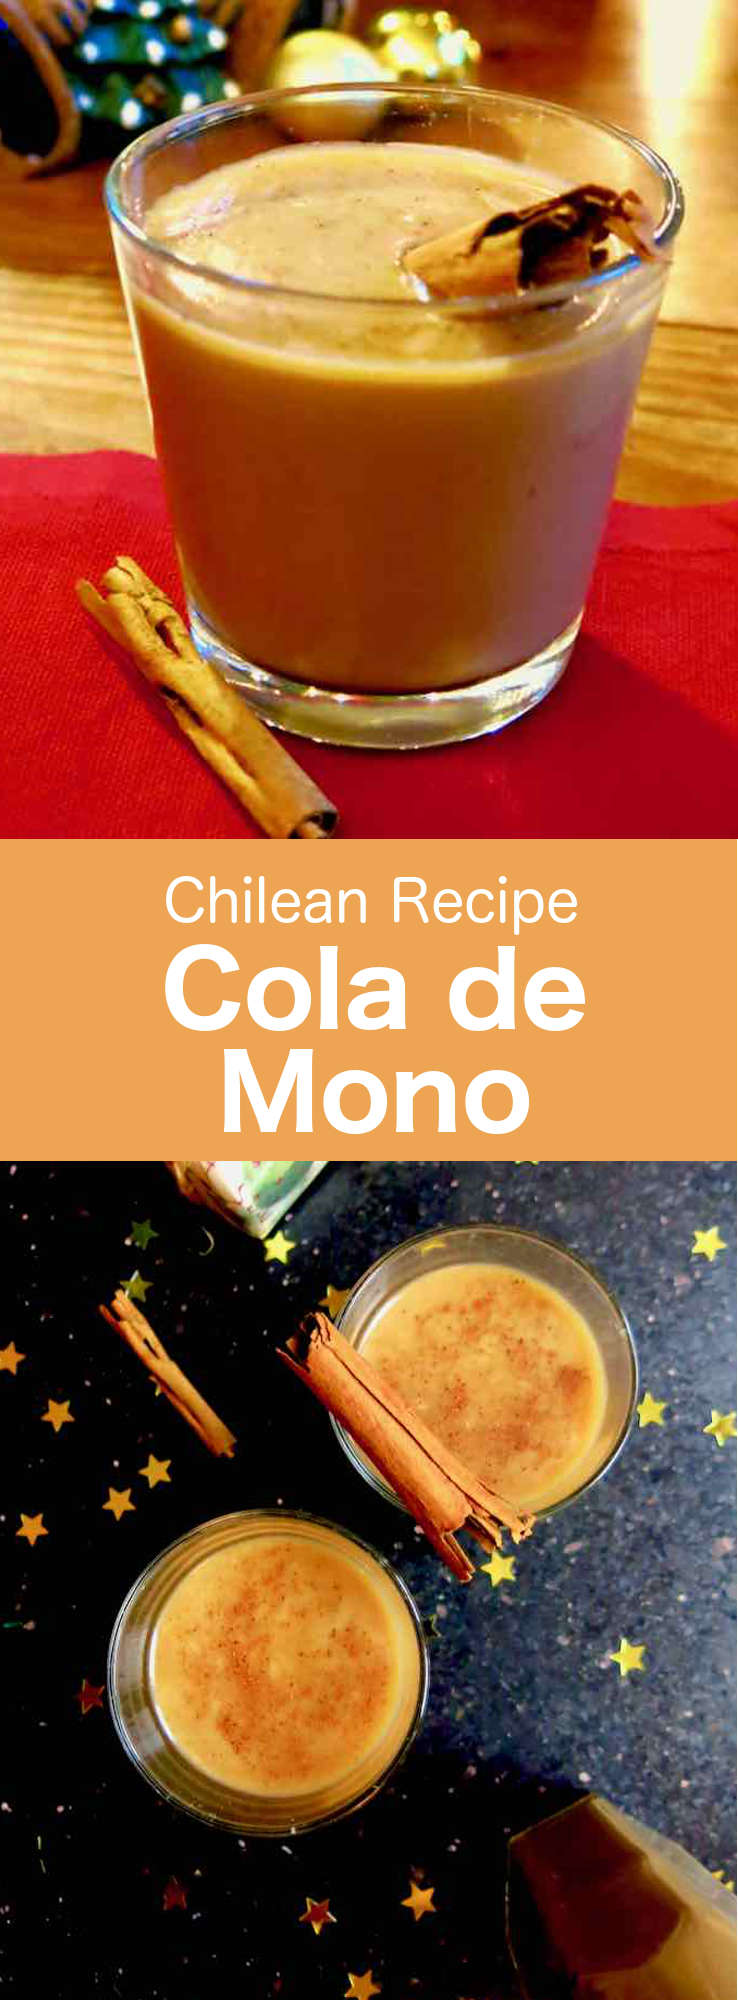 Cola de Mono or colemono is a popular Chilean cocktail prepared with milk, sugar, coffee, cloves, cinnamon and brandy that is served during Christmas and New Year. #Chile #ChileanCuisine #ChileanRecipe #ChileanFood #WorldCuisine #196flavors